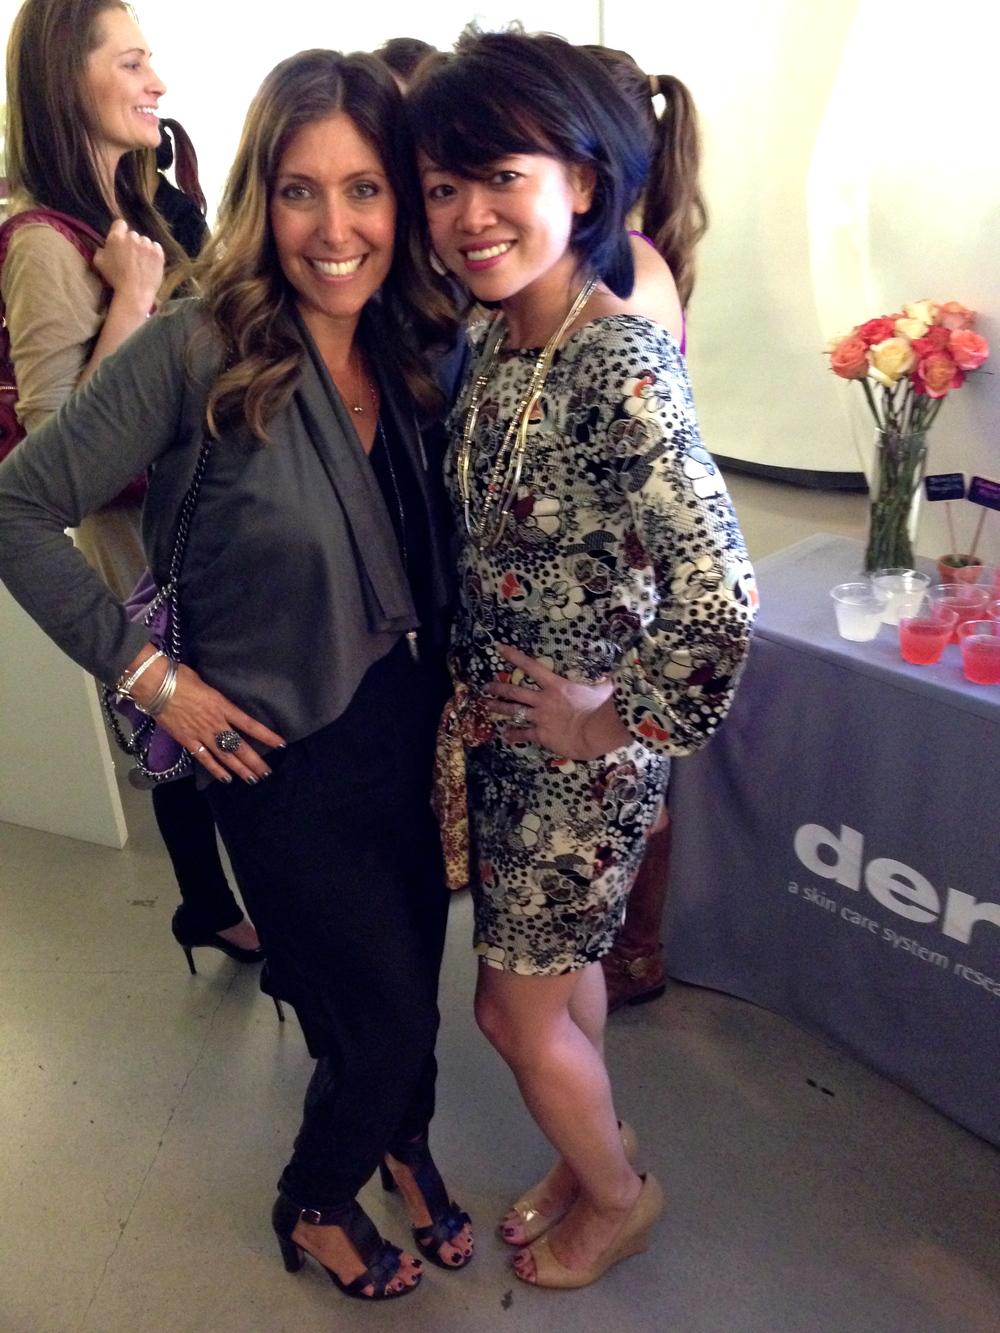 With leadership and lifestyle expert Claudia Chan at the  women's empowerment and networking event  held at Dermalogica in Santa Monica.